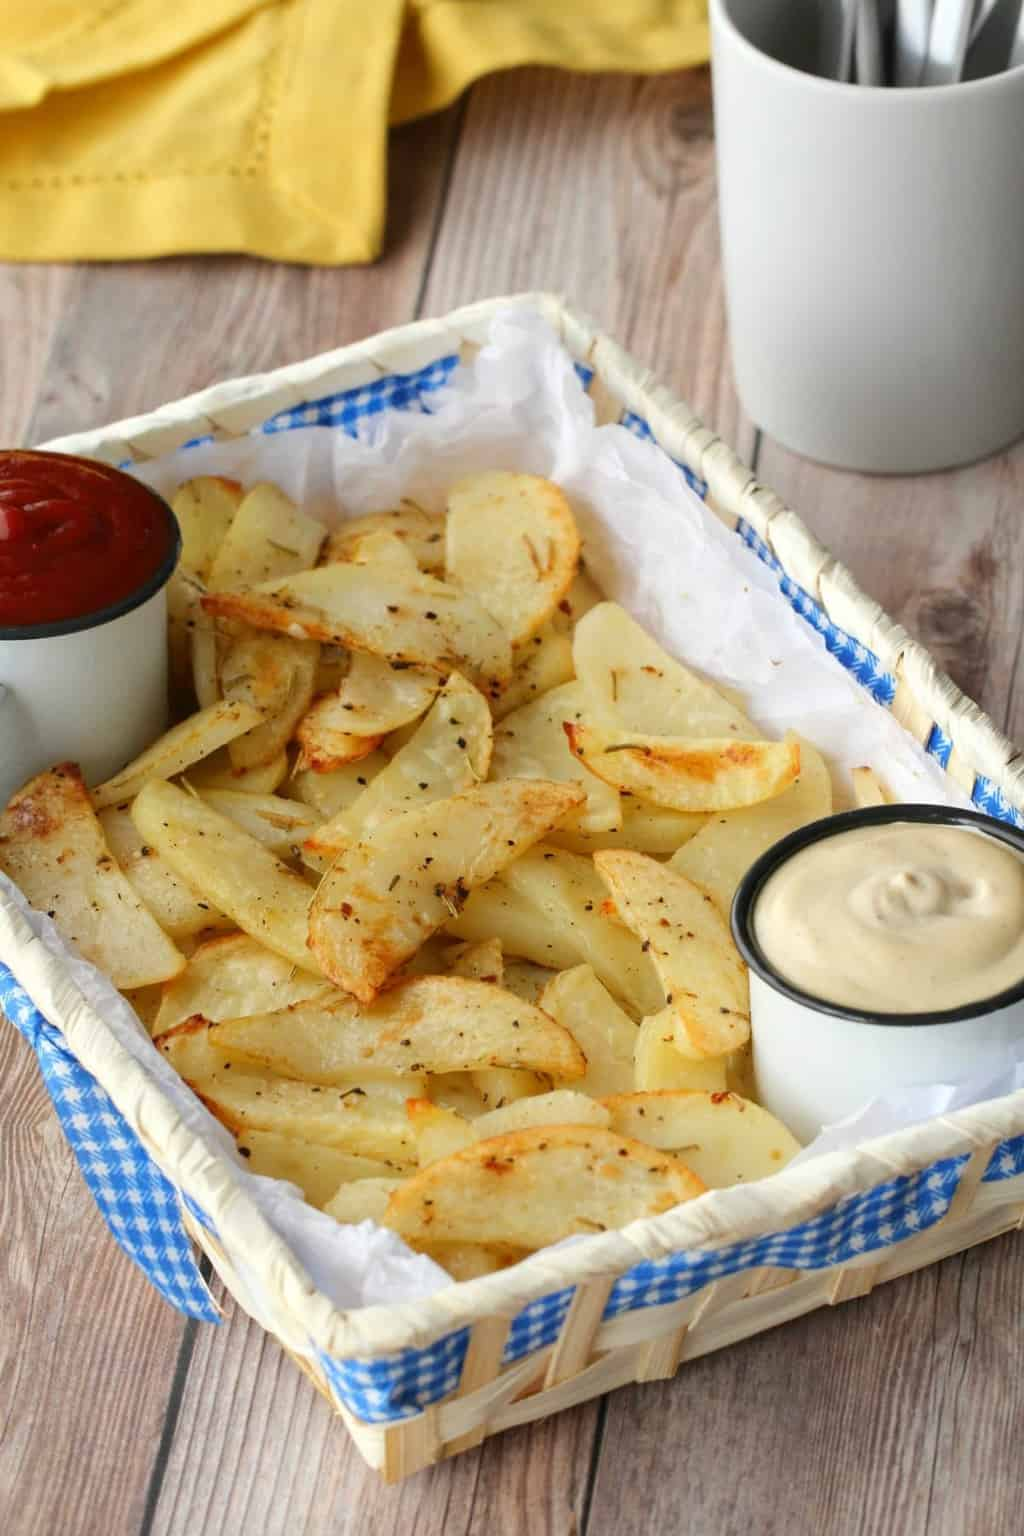 Baked Potato Fries in a basket with cashew sour cream and ketchup.